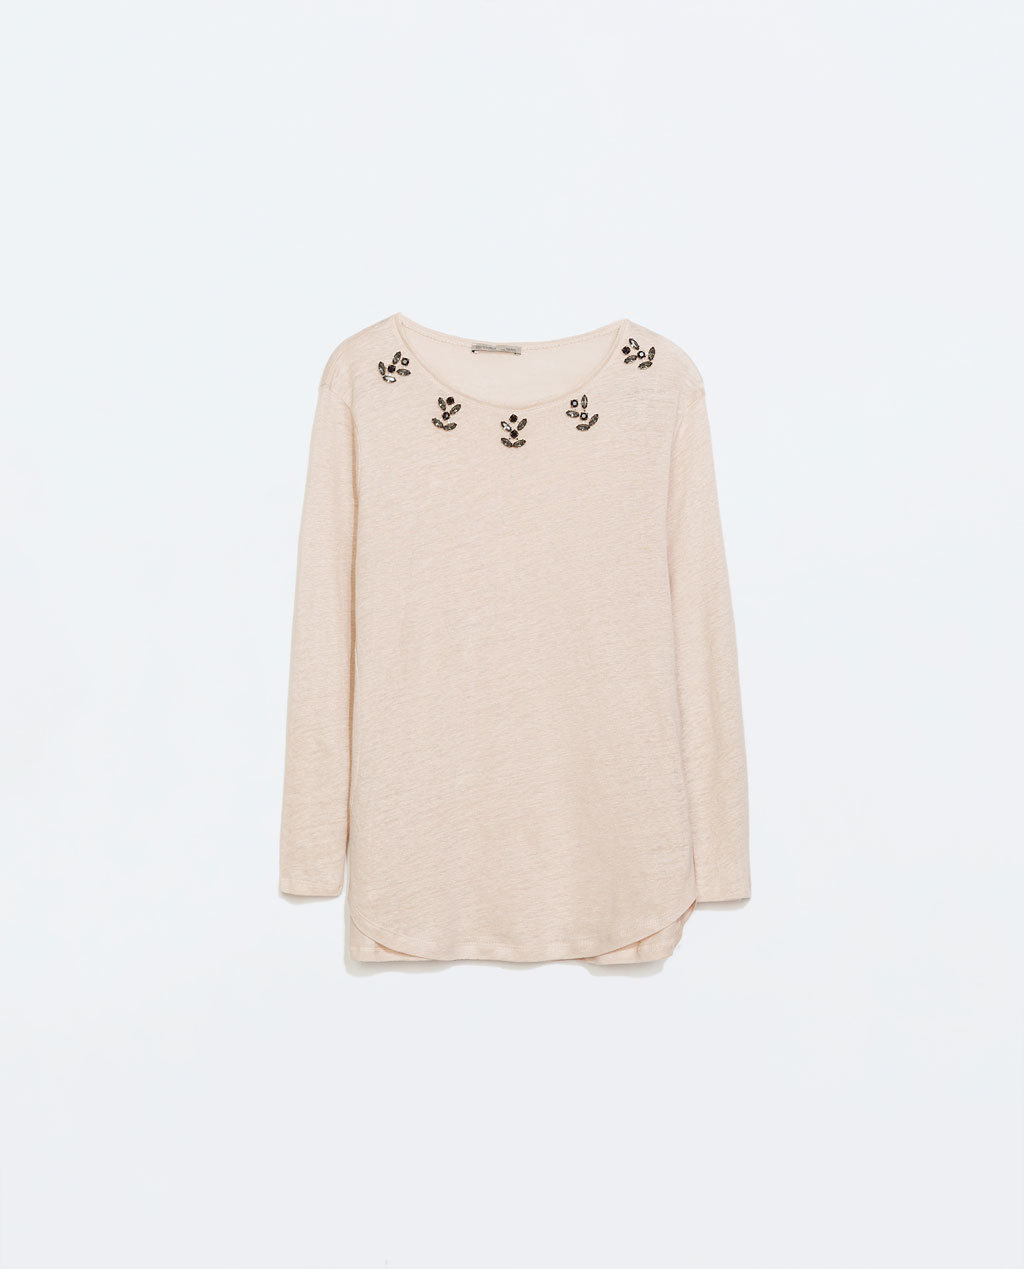 Linen T Shirt With Jewel Collar - neckline: round neck; pattern: plain; length: below the bottom; style: t-shirt; predominant colour: blush; occasions: casual, creative work; fibres: linen - 100%; fit: loose; sleeve length: 3/4 length; sleeve style: standard; pattern type: fabric; texture group: other - light to midweight; embellishment: jewels/stone; secondary colour: clear; season: a/w 2014; wardrobe: highlight; embellishment location: shoulder